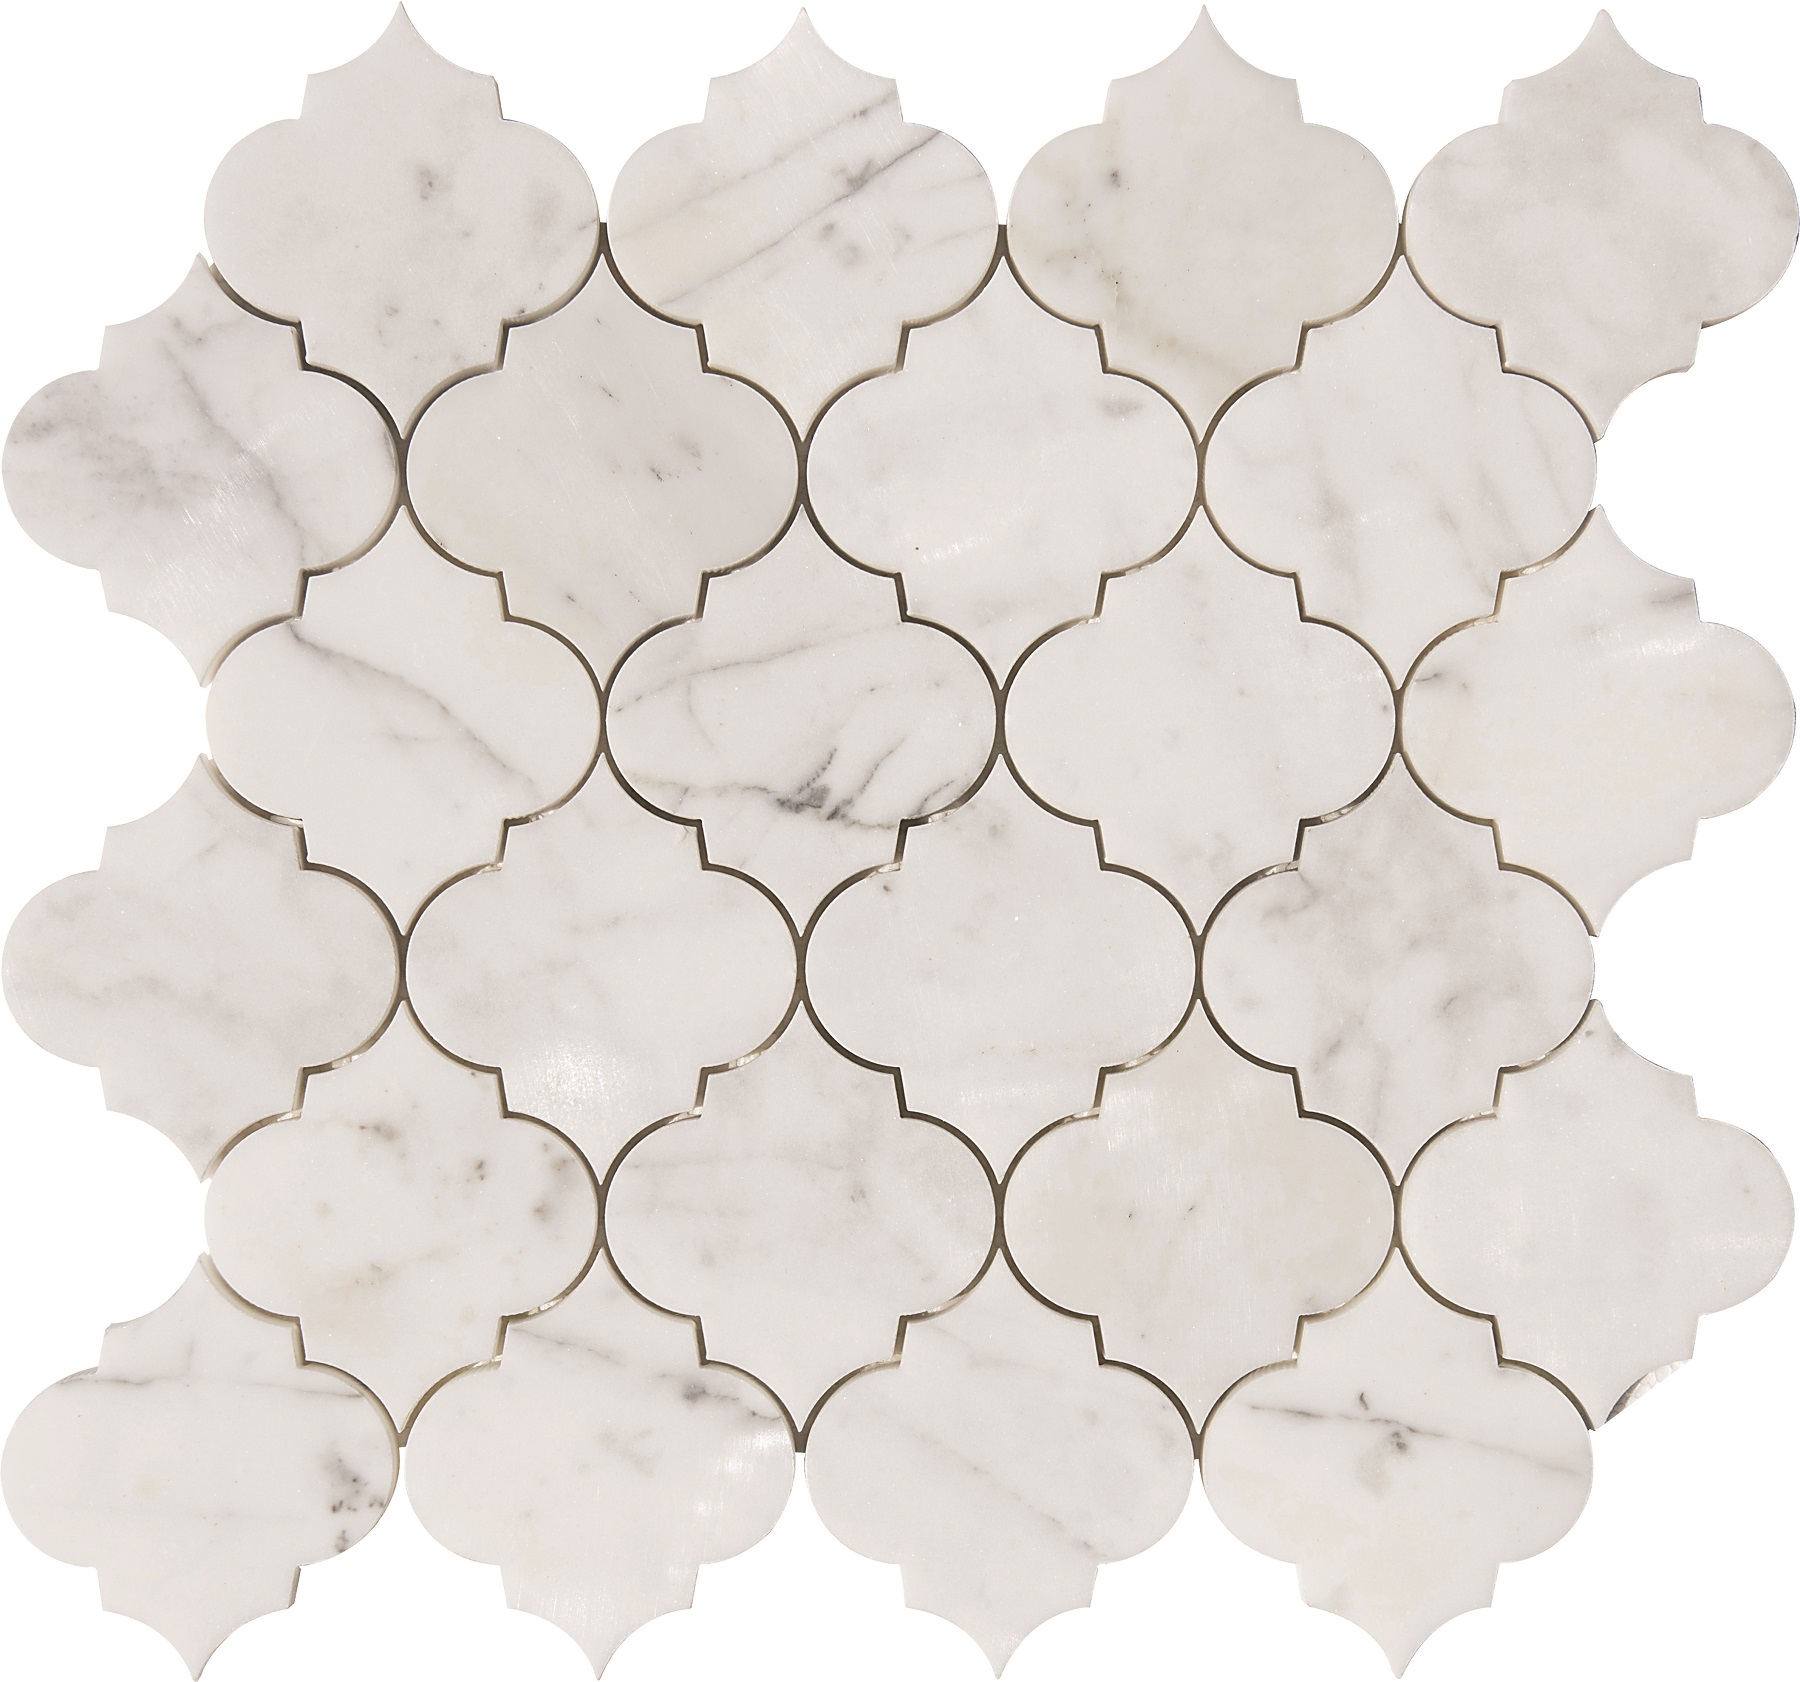 Arabesque Marble Tile Statuario Arabesque Waterjet Mosaics Polished